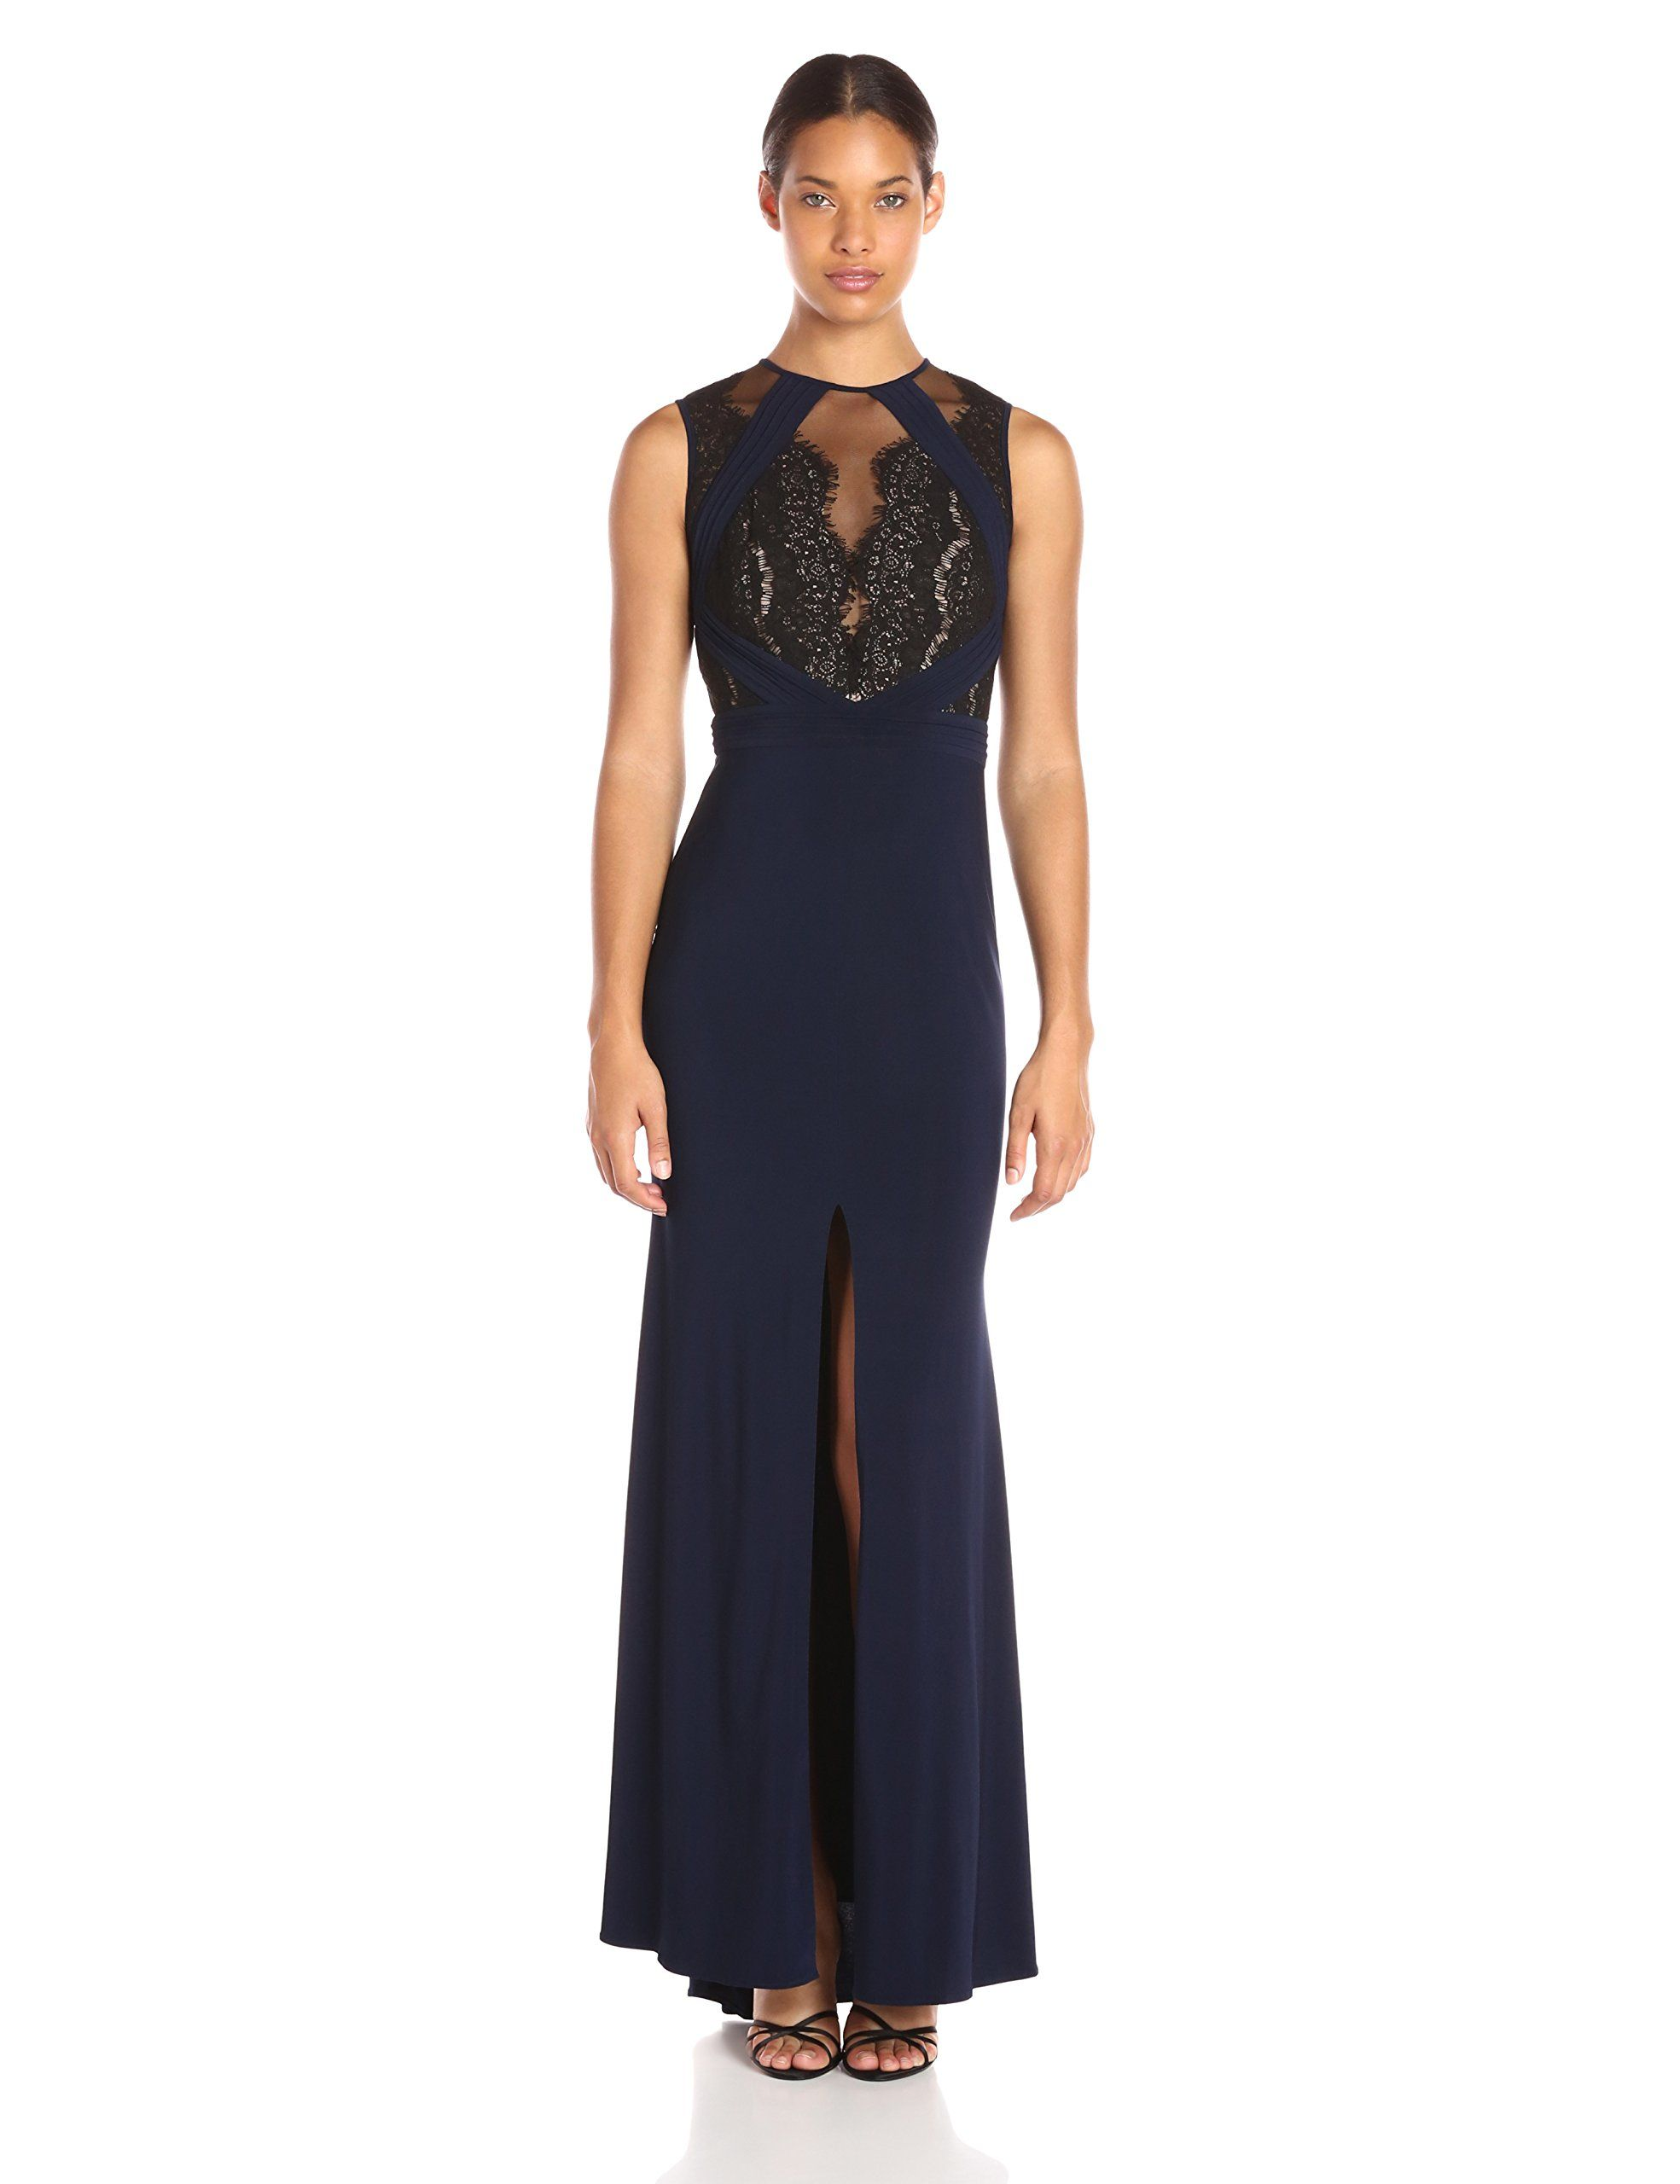 d86f6275 Xscape Women's Long Ity Dress with Lace/Illusion Top, Navy/Black, 6.  Lace/illusion top. Front slit.